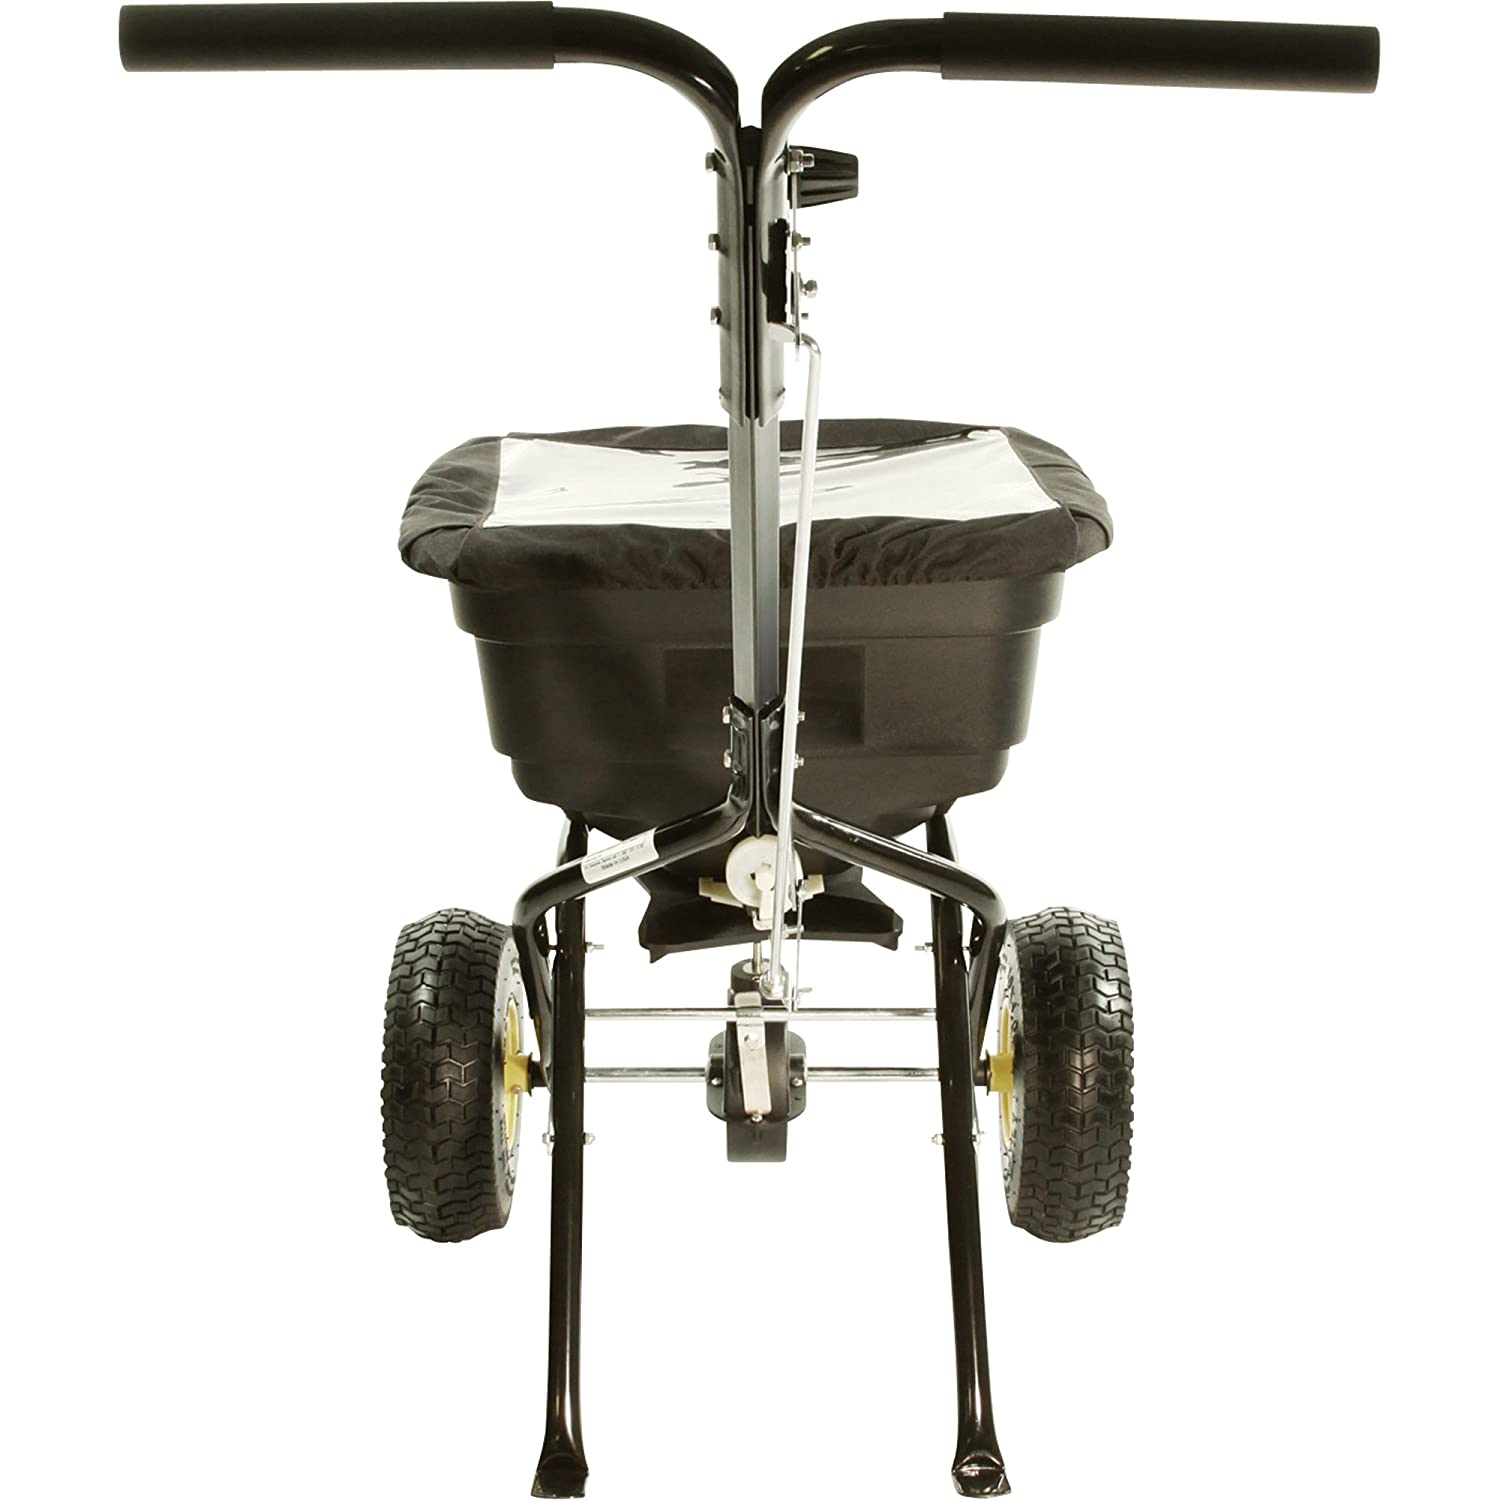 Spyker P20-5010 50-Pound Capacity Broadcast Spreader